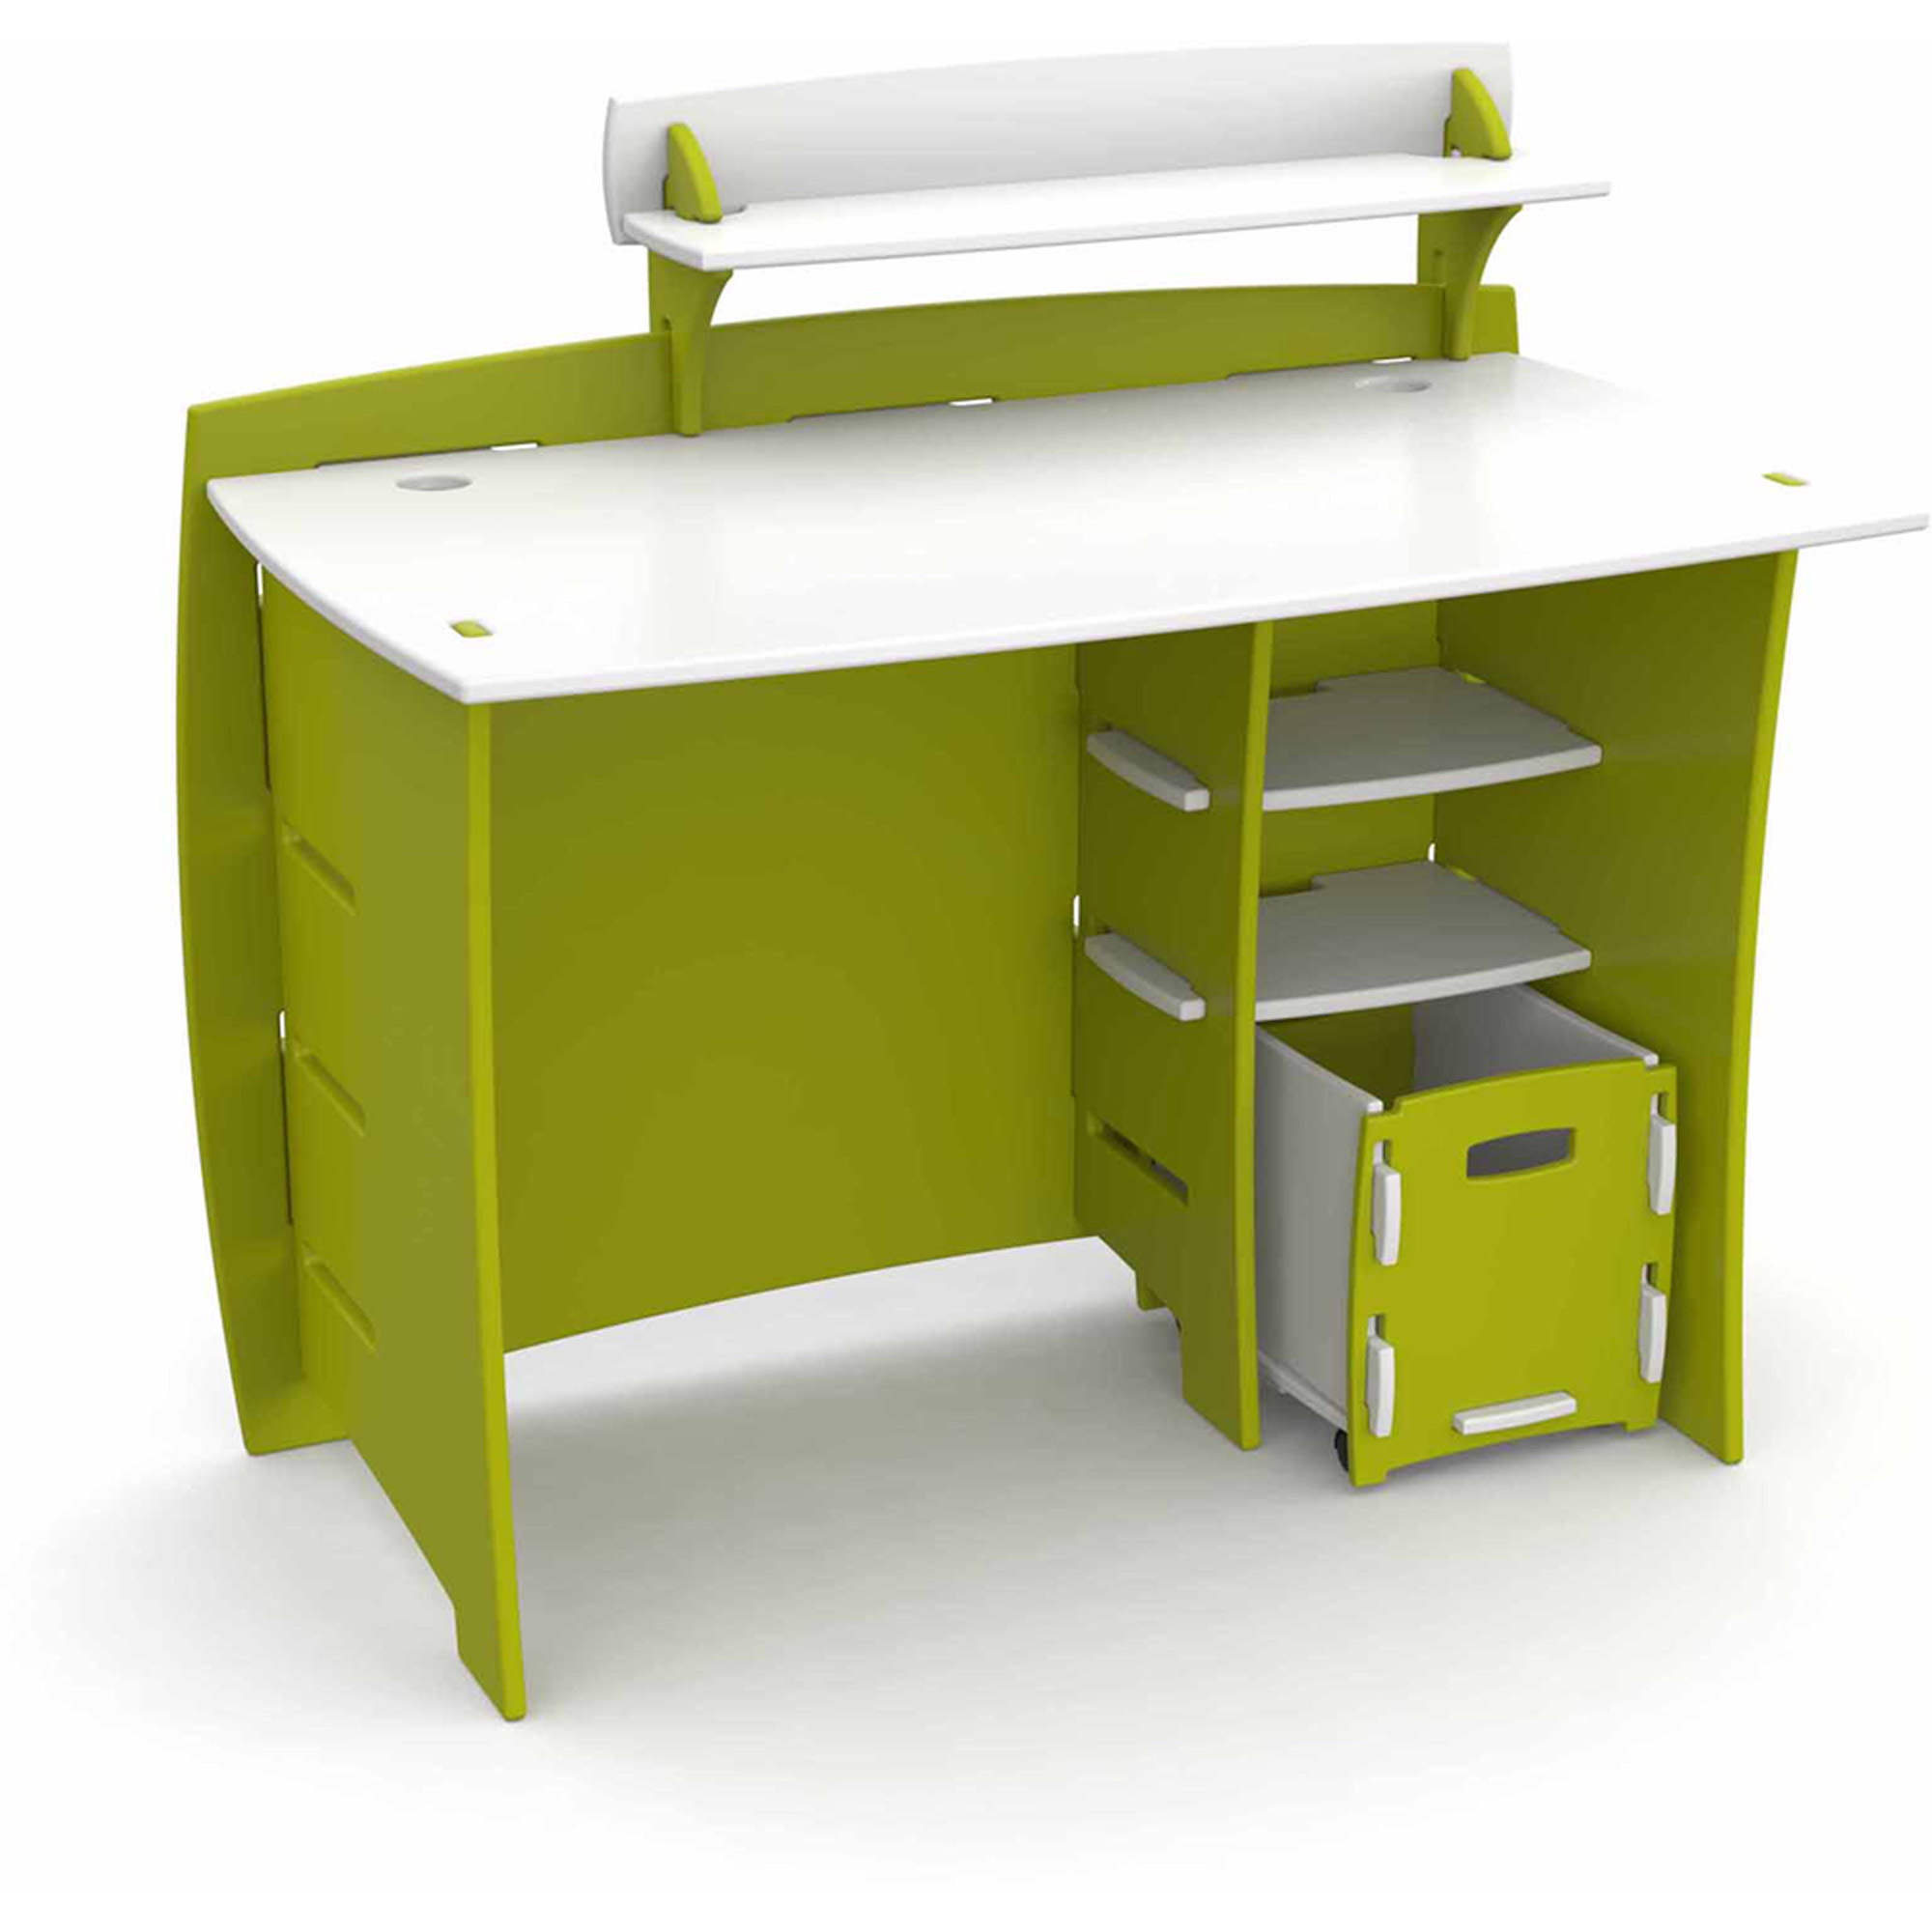 Legare Kids Furniture Frog Series Collection Complete Desk System Set, Lime Green and White by Kittrich Corporation